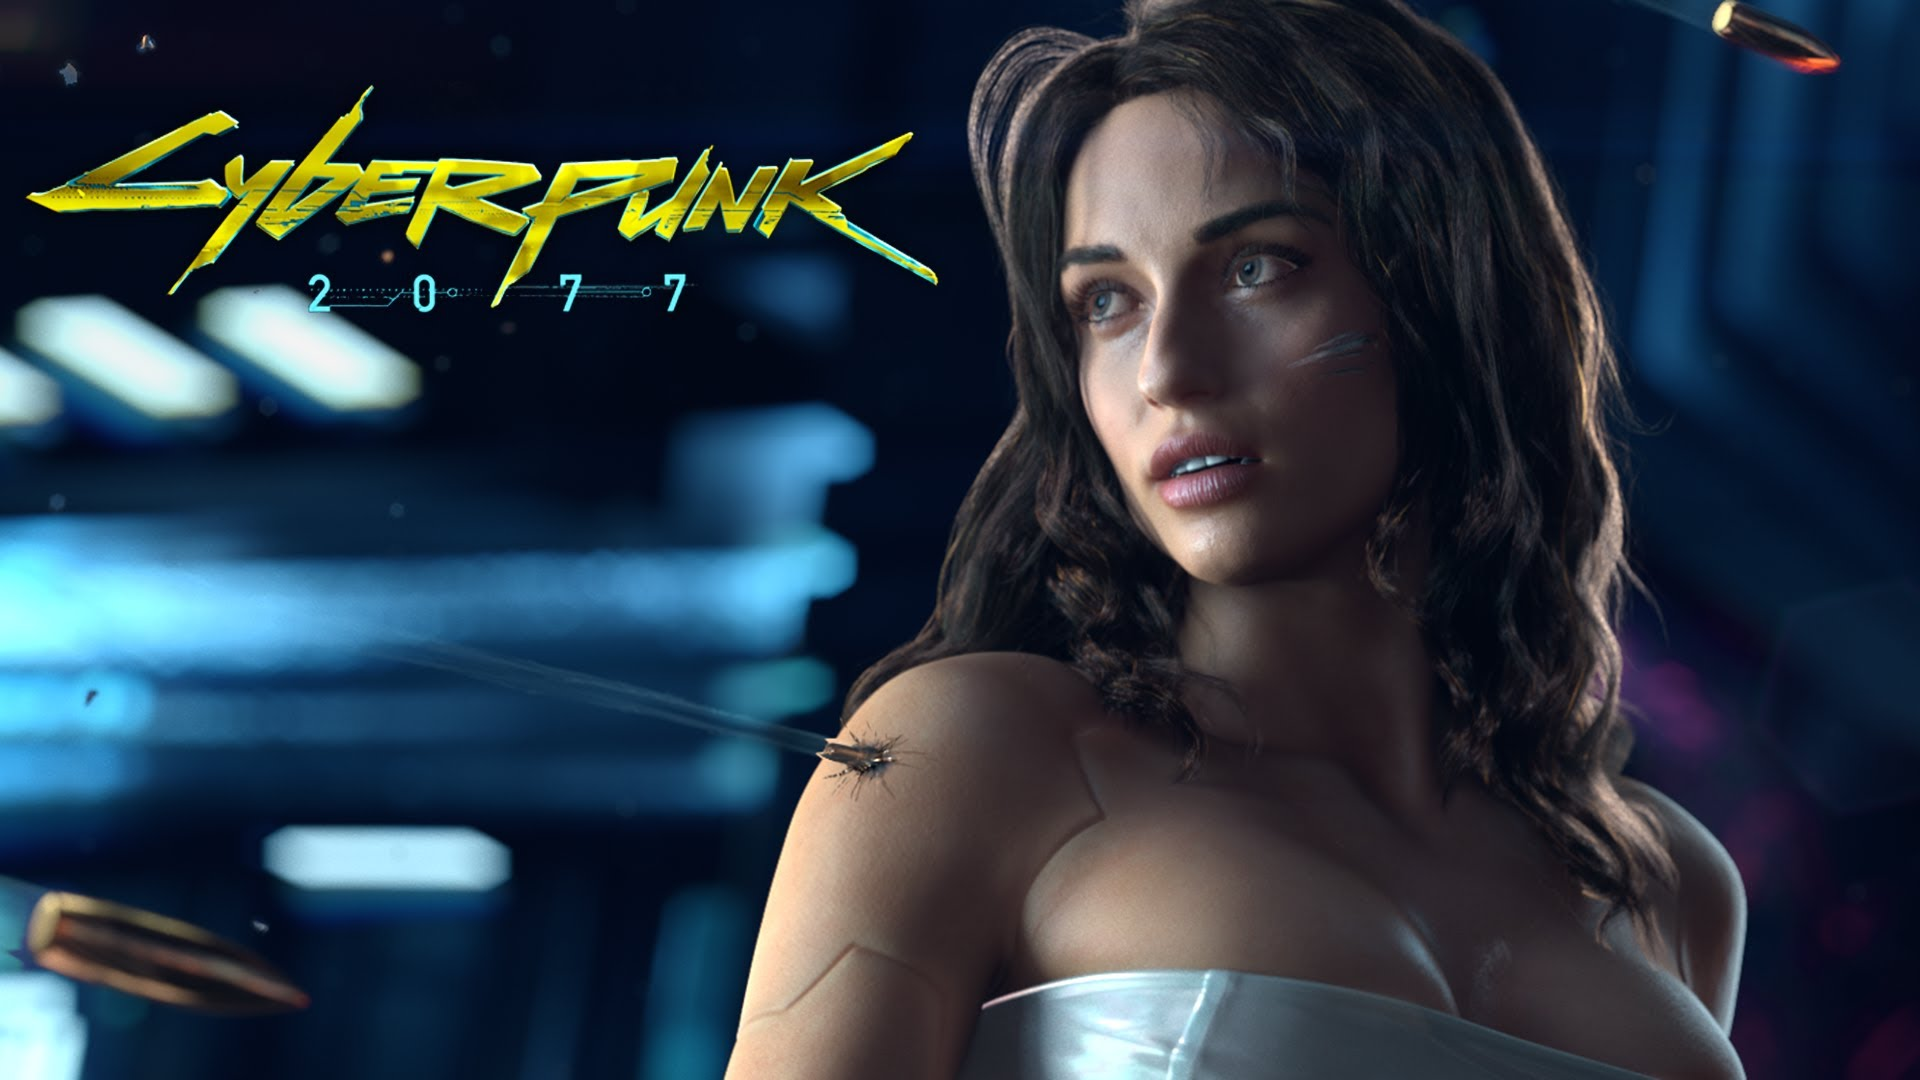 maxresdefault 41 Cyberpunk 2077 Could Blow Witcher 3 Out Of The Water, Dev Says